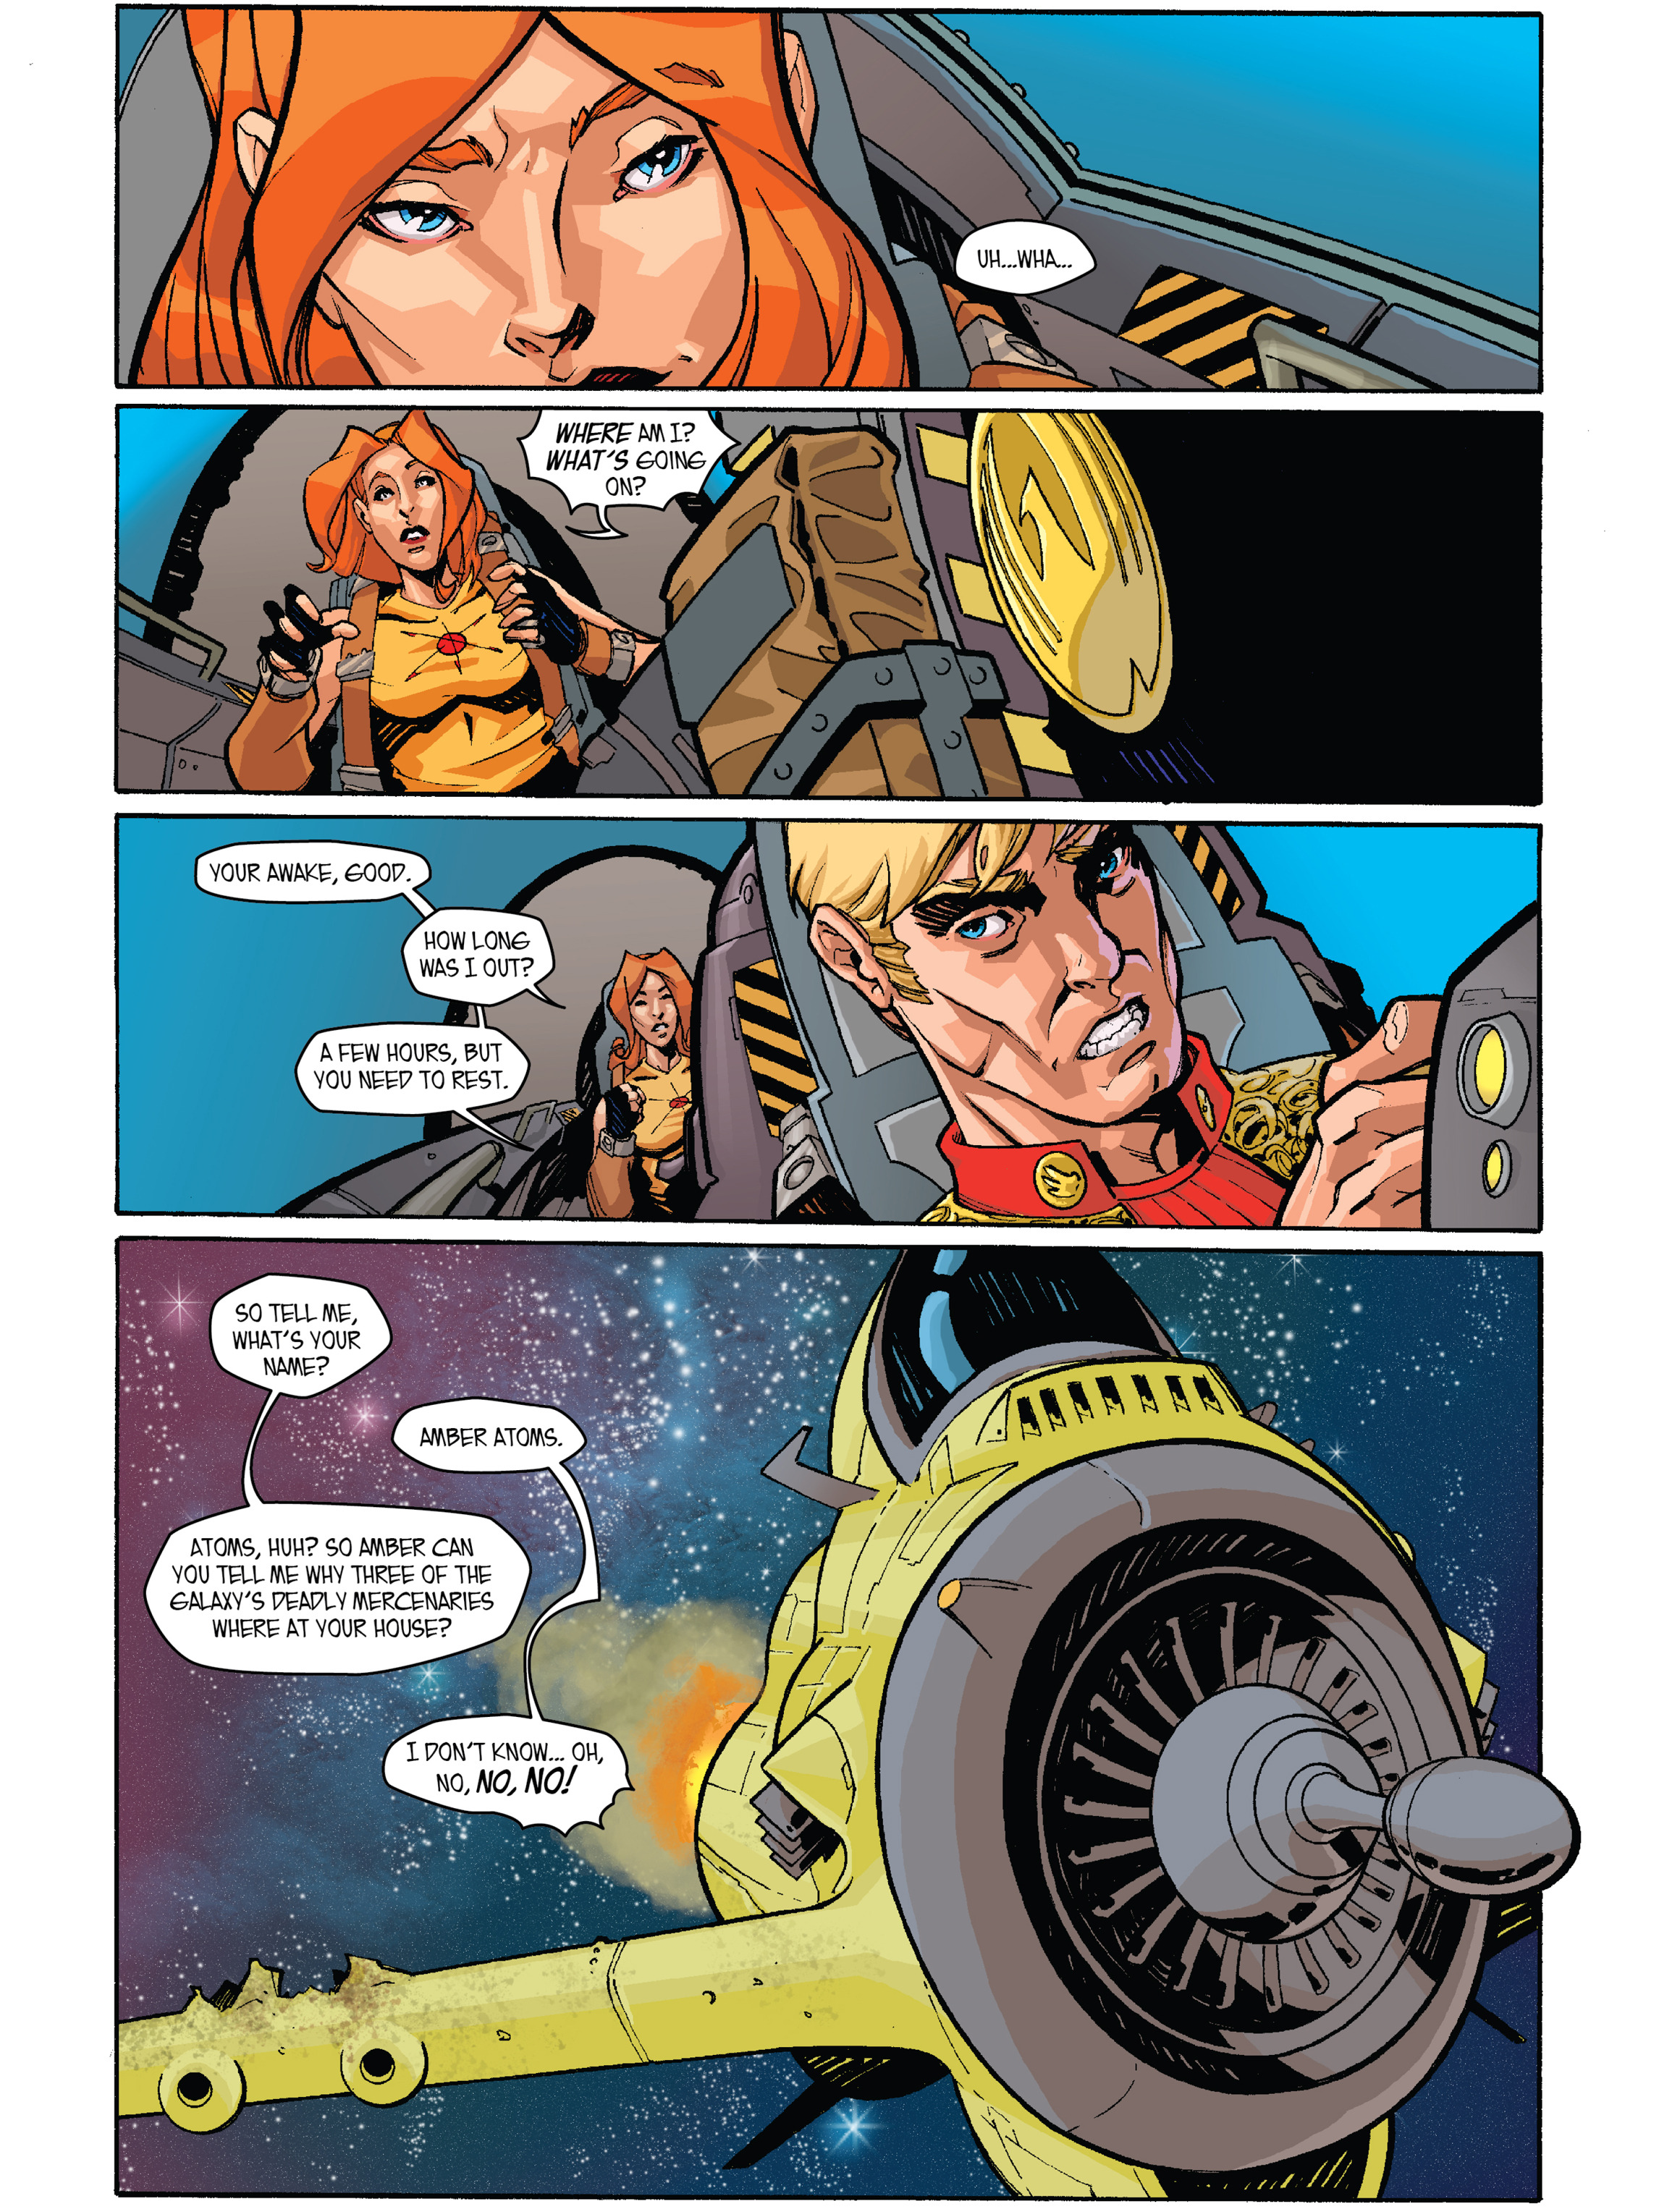 Read online Amber Atoms comic -  Issue #2 - 9